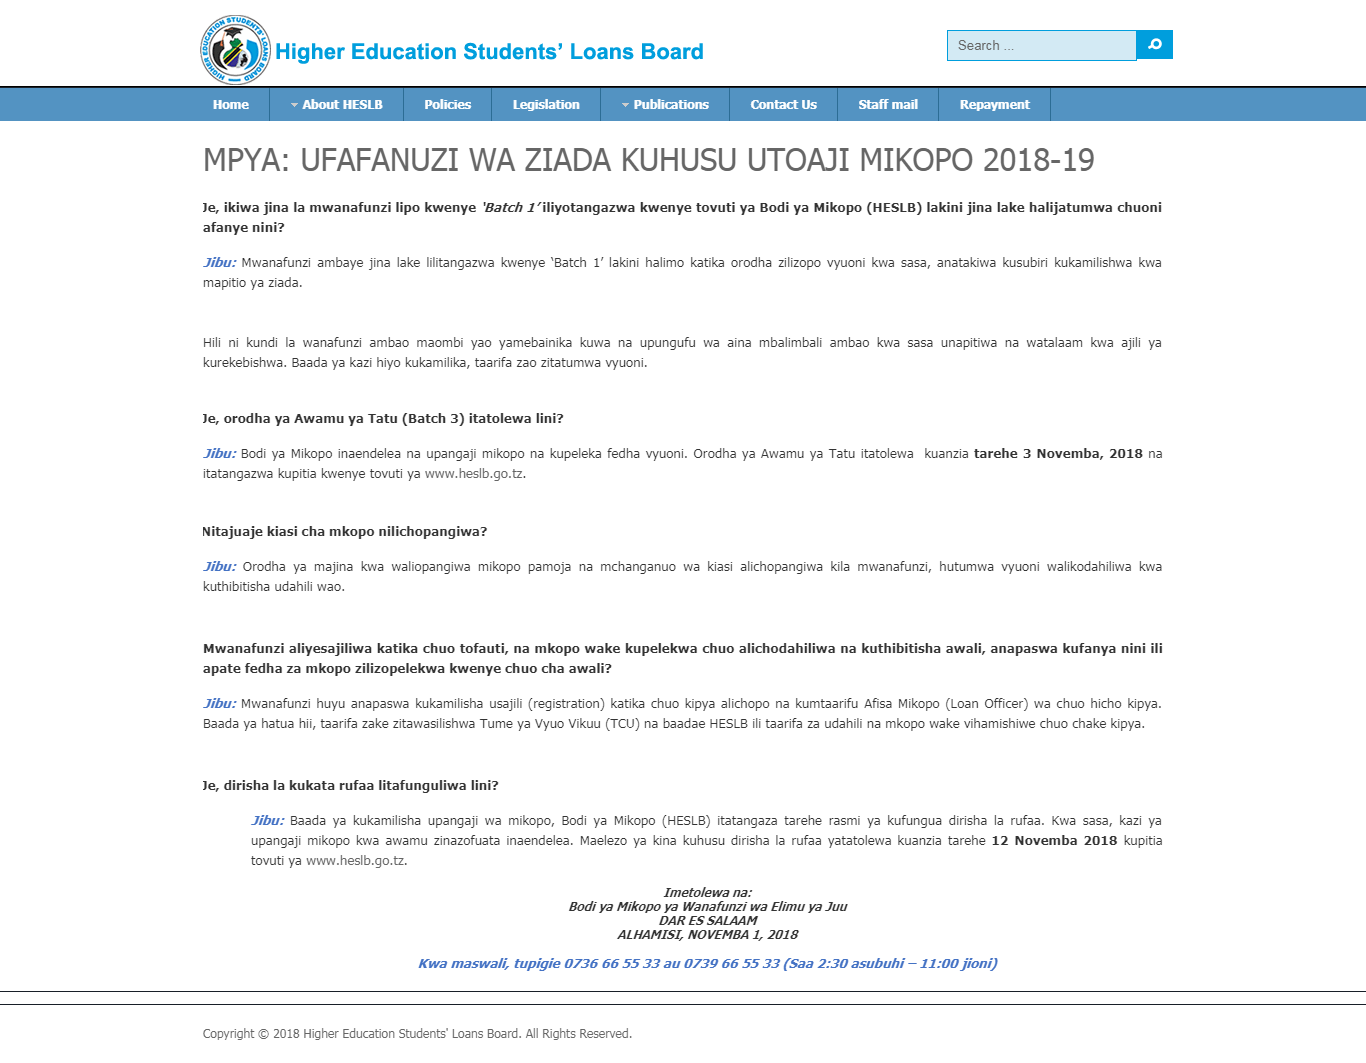 HESLB: MORE CLARIFICATION ON LOAN PROVISION PROVISION ACADEMIC YEAR 2018/2019.